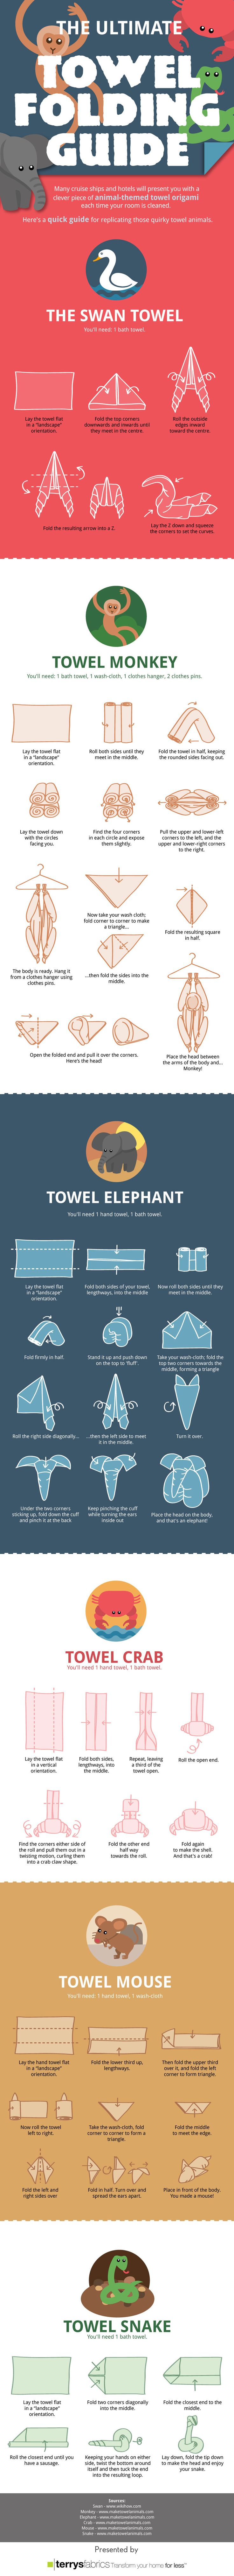 The Ultimate Towel Folding Guide #infographic